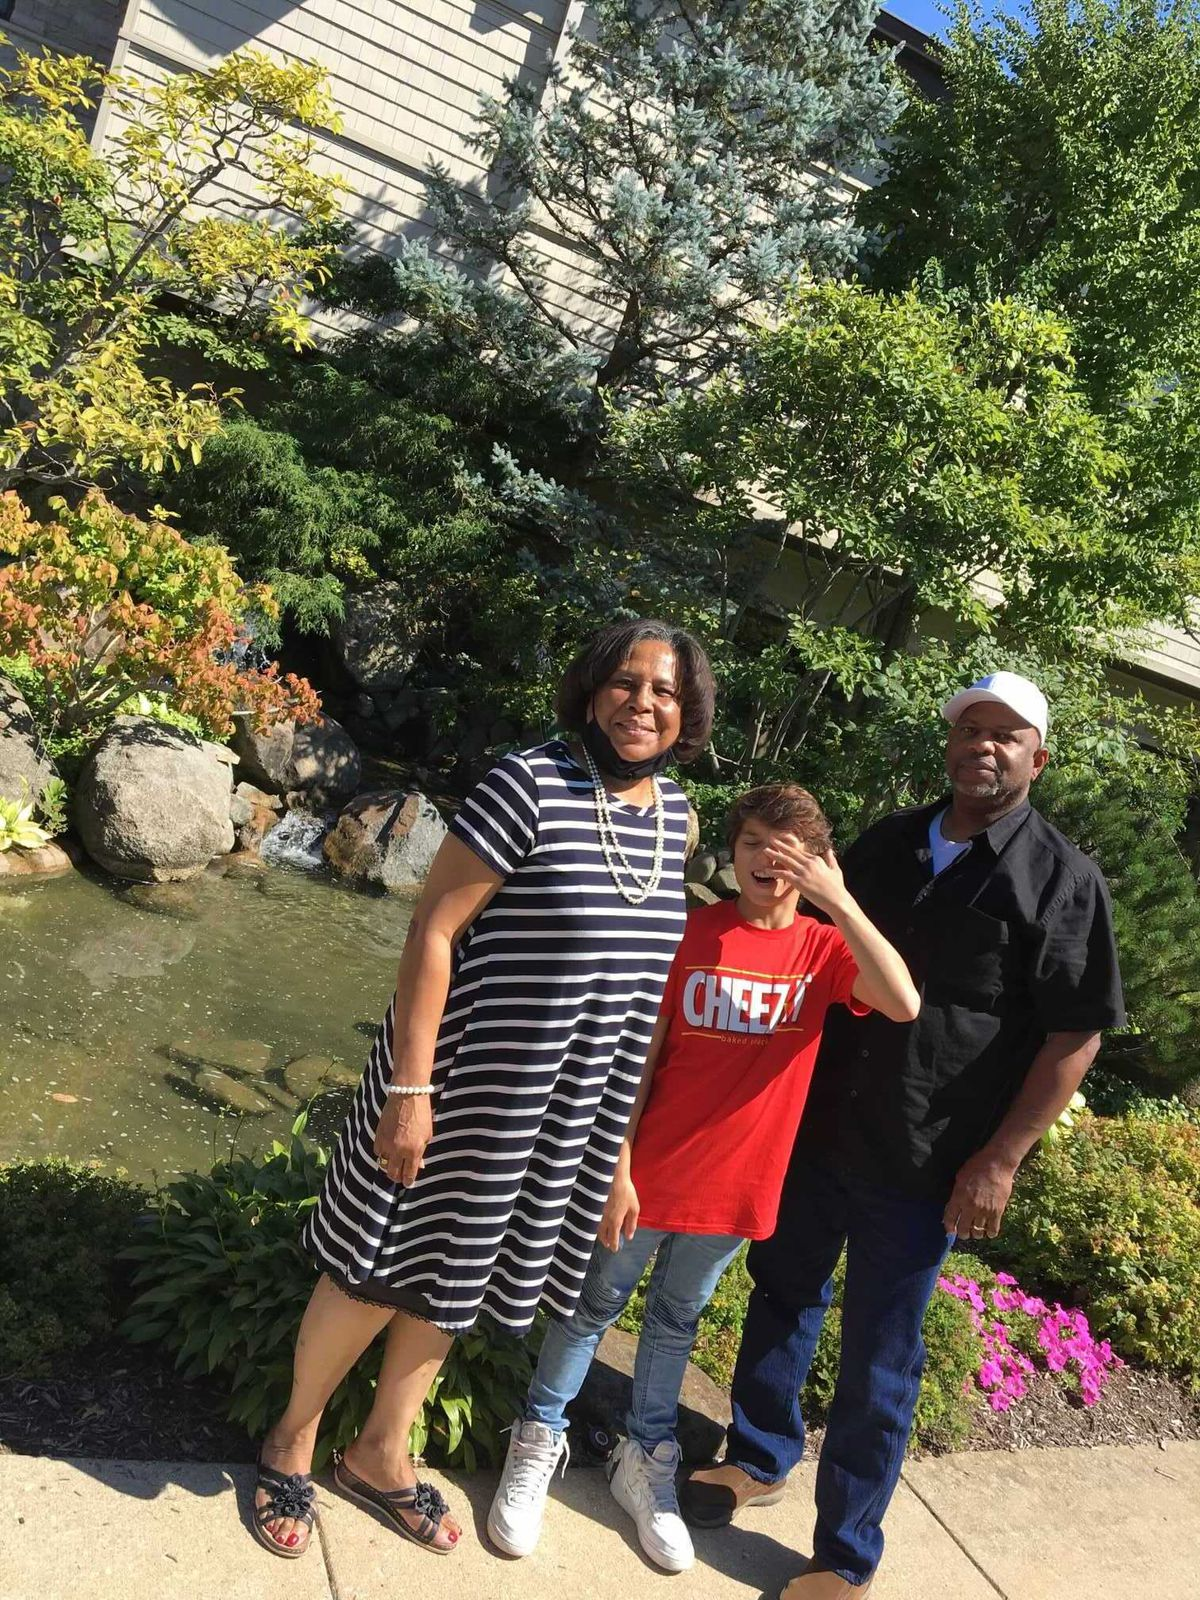 (Left to right) Yvonne Bailey poses for a portrait with her adopted son David and her husband, Terry Bailey in front of trees and a small pond on a sunny day.